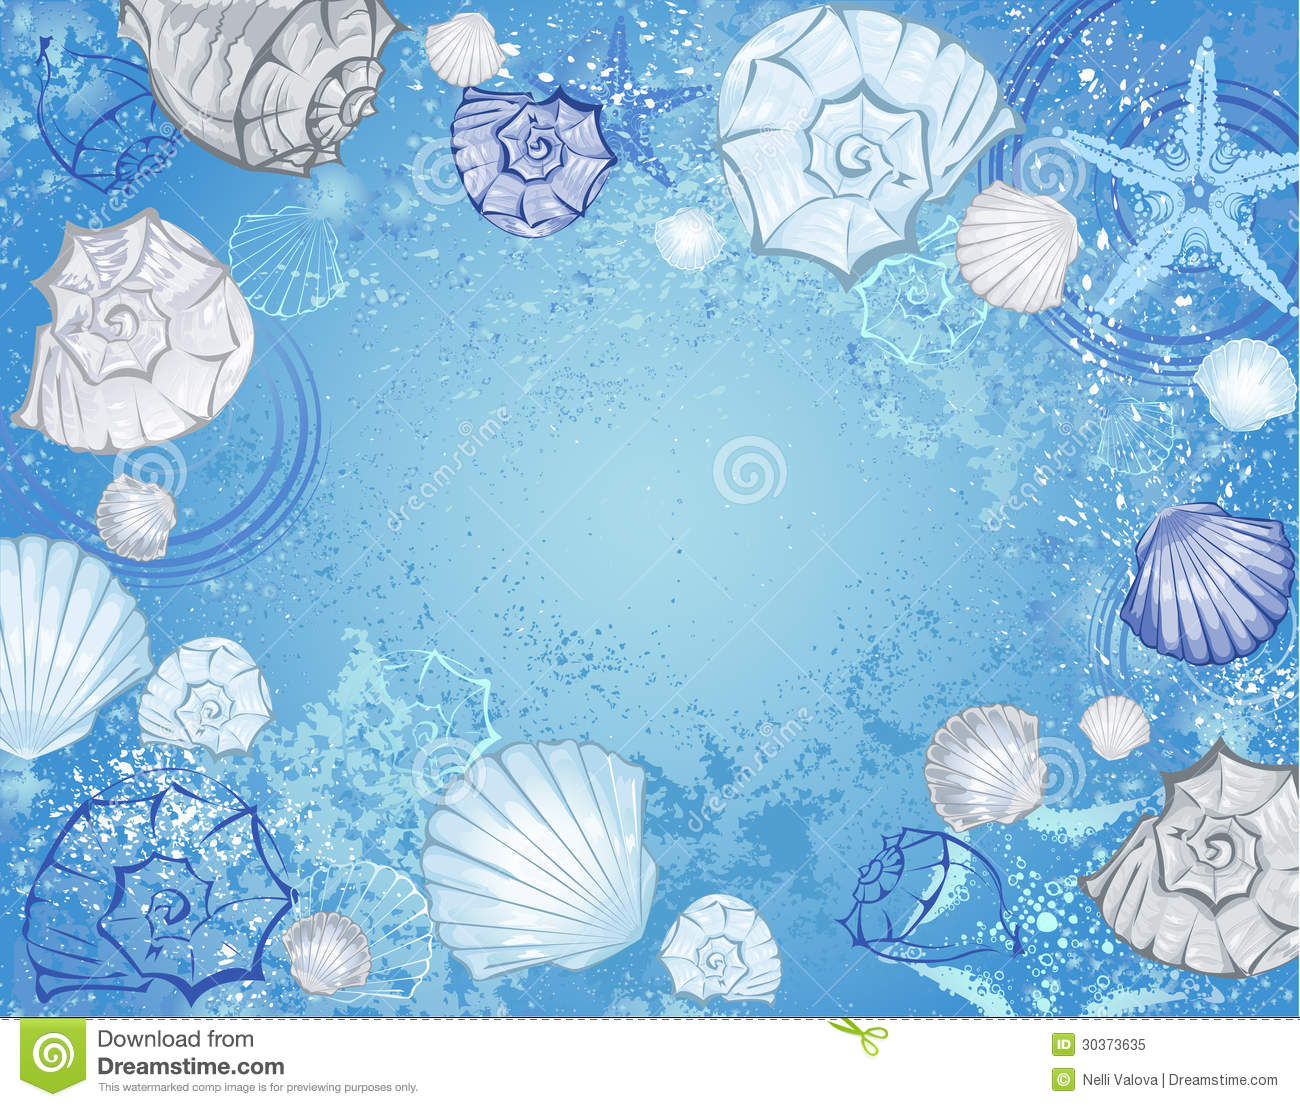 ... Background With Sea Shells Royalty Free Stock Photo - Image: 30373635